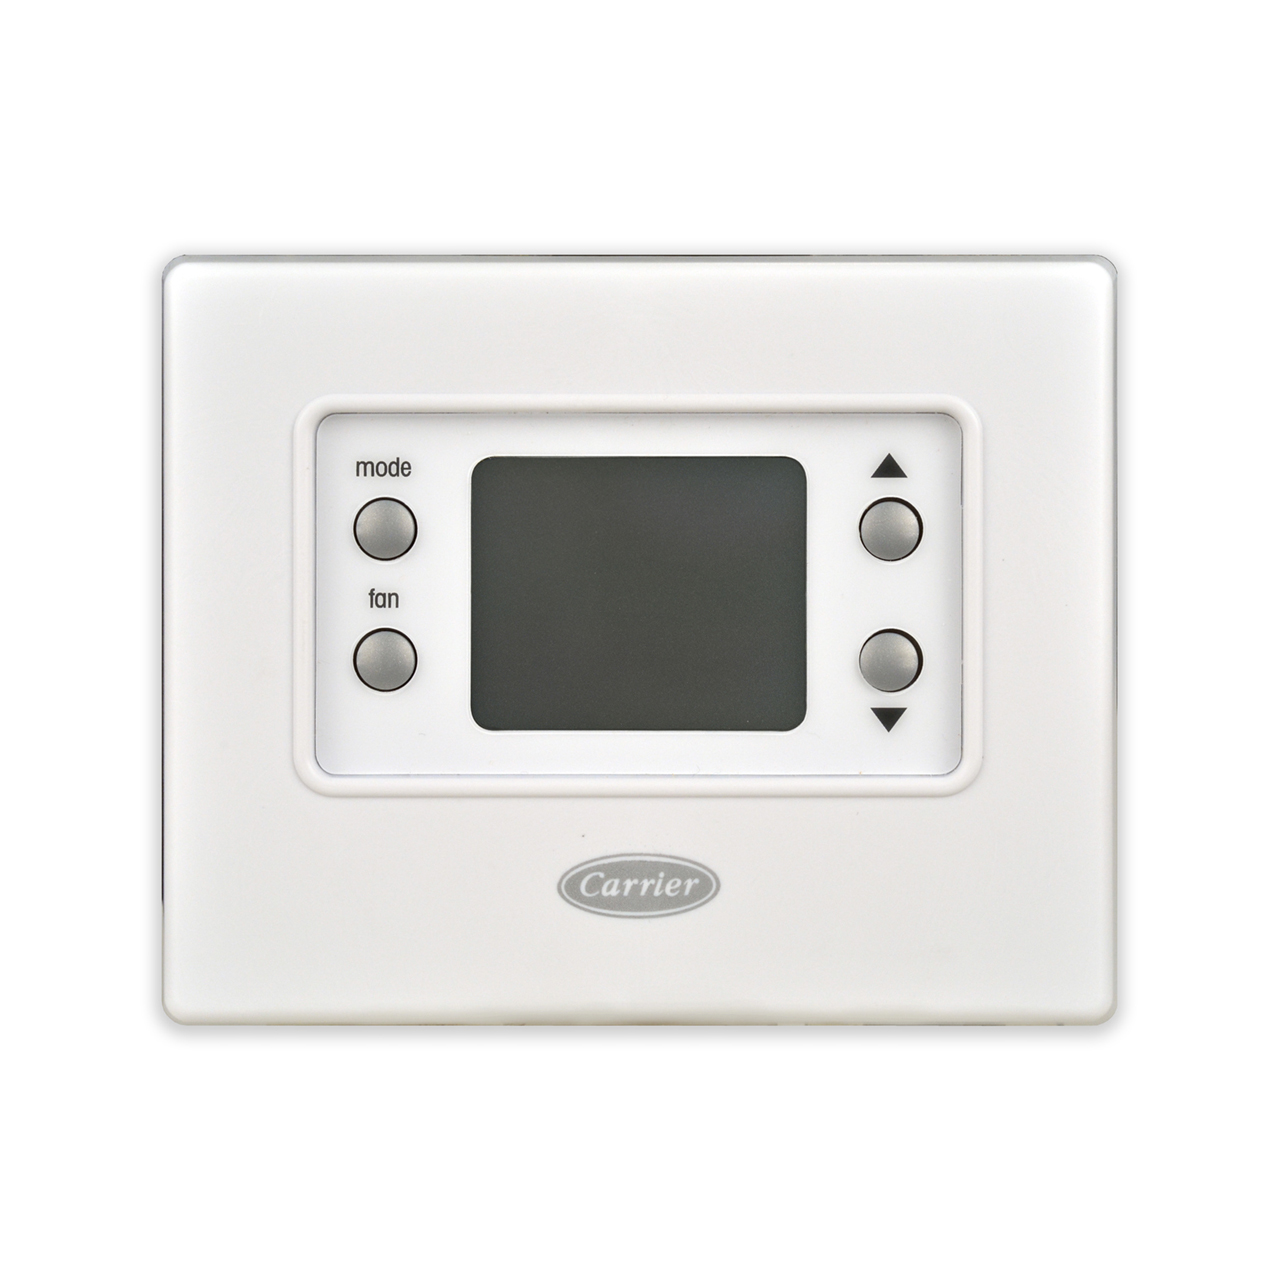 carrier-33CSCNACHP-01-commercial-non-programmable-thermostat